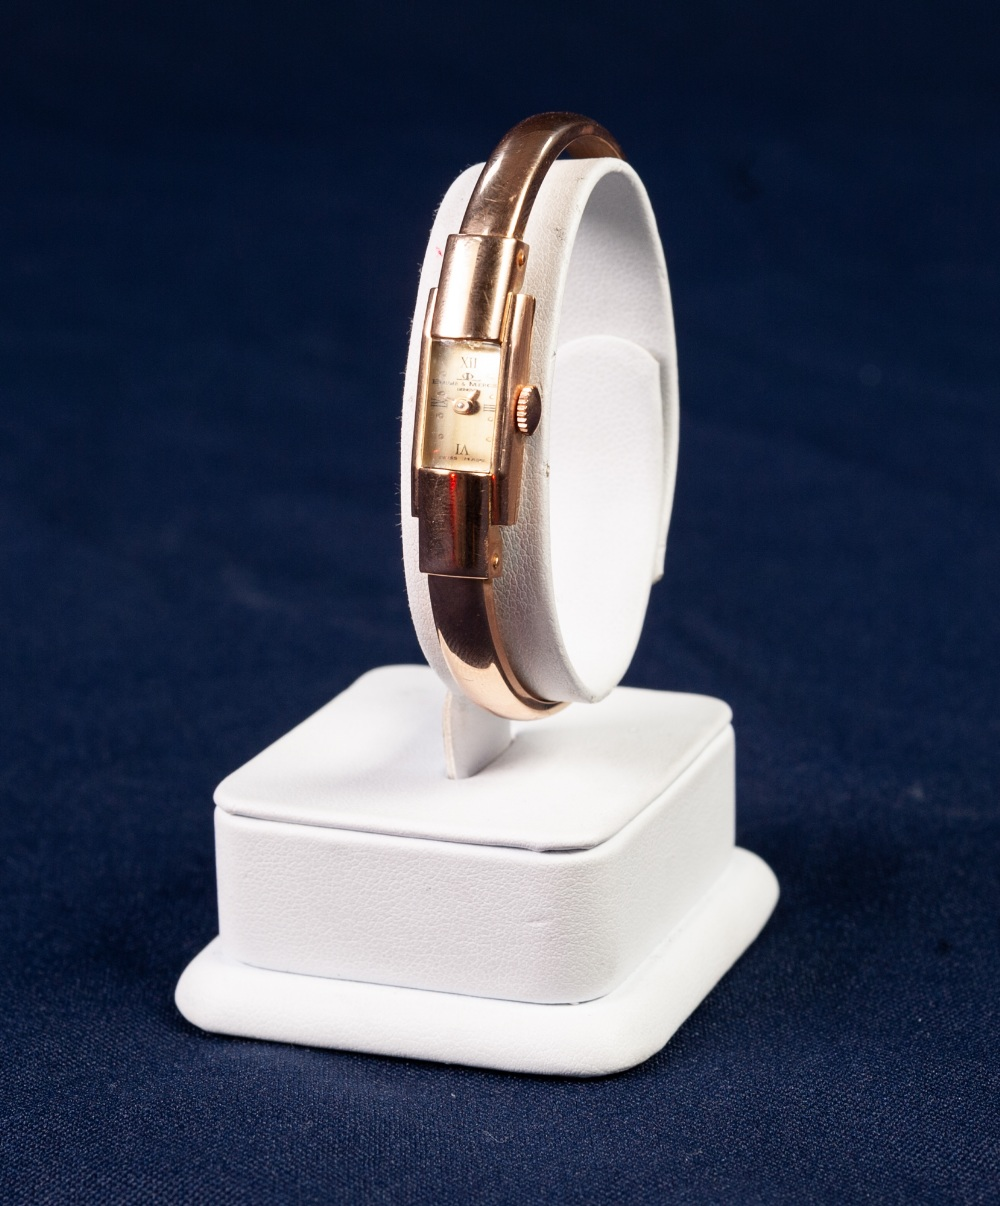 Lot 21 - LADY'S BAUME & MERCIER, GENEVE, 18ct GOLD SPRUNG BANGLE WATCH with mechanical movement, tiny